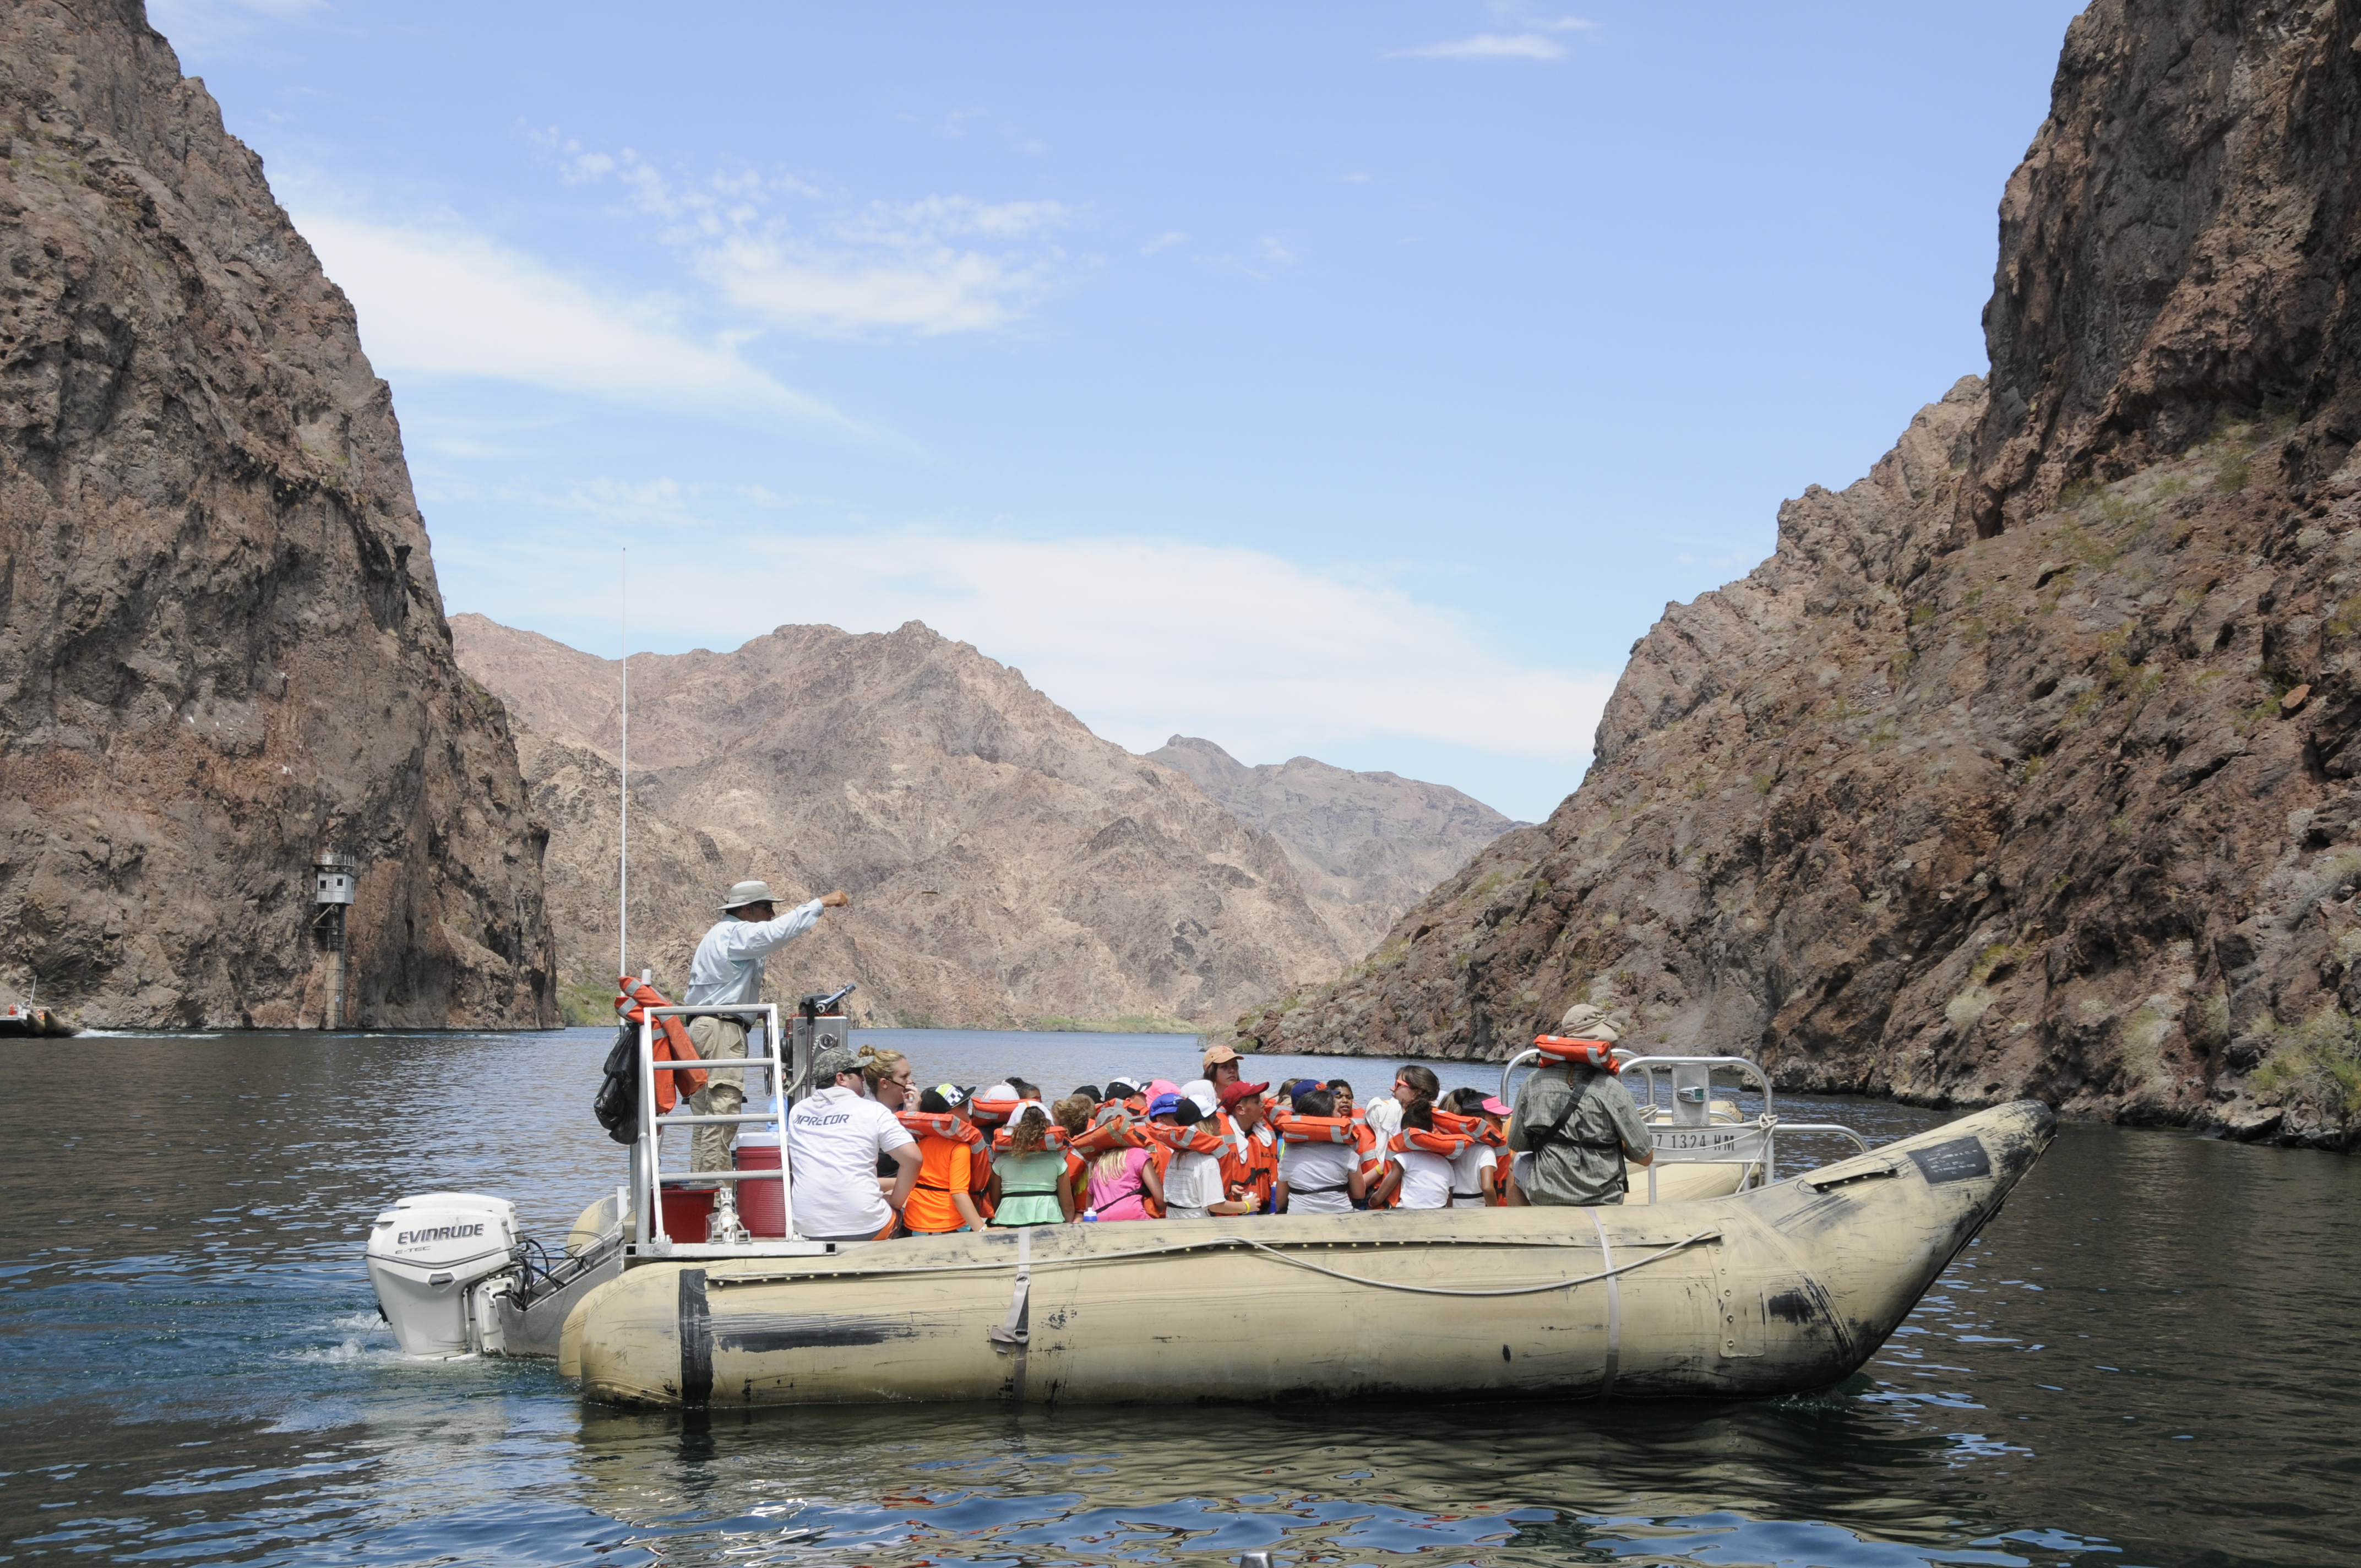 YMCA summer campers from North Las Vegas take a guided river raft tour on the Black Canyon Water Trail at Lake Mead National Recreation Area June 30, 2015. (NPS photo by Chelsea J. Kennedy)